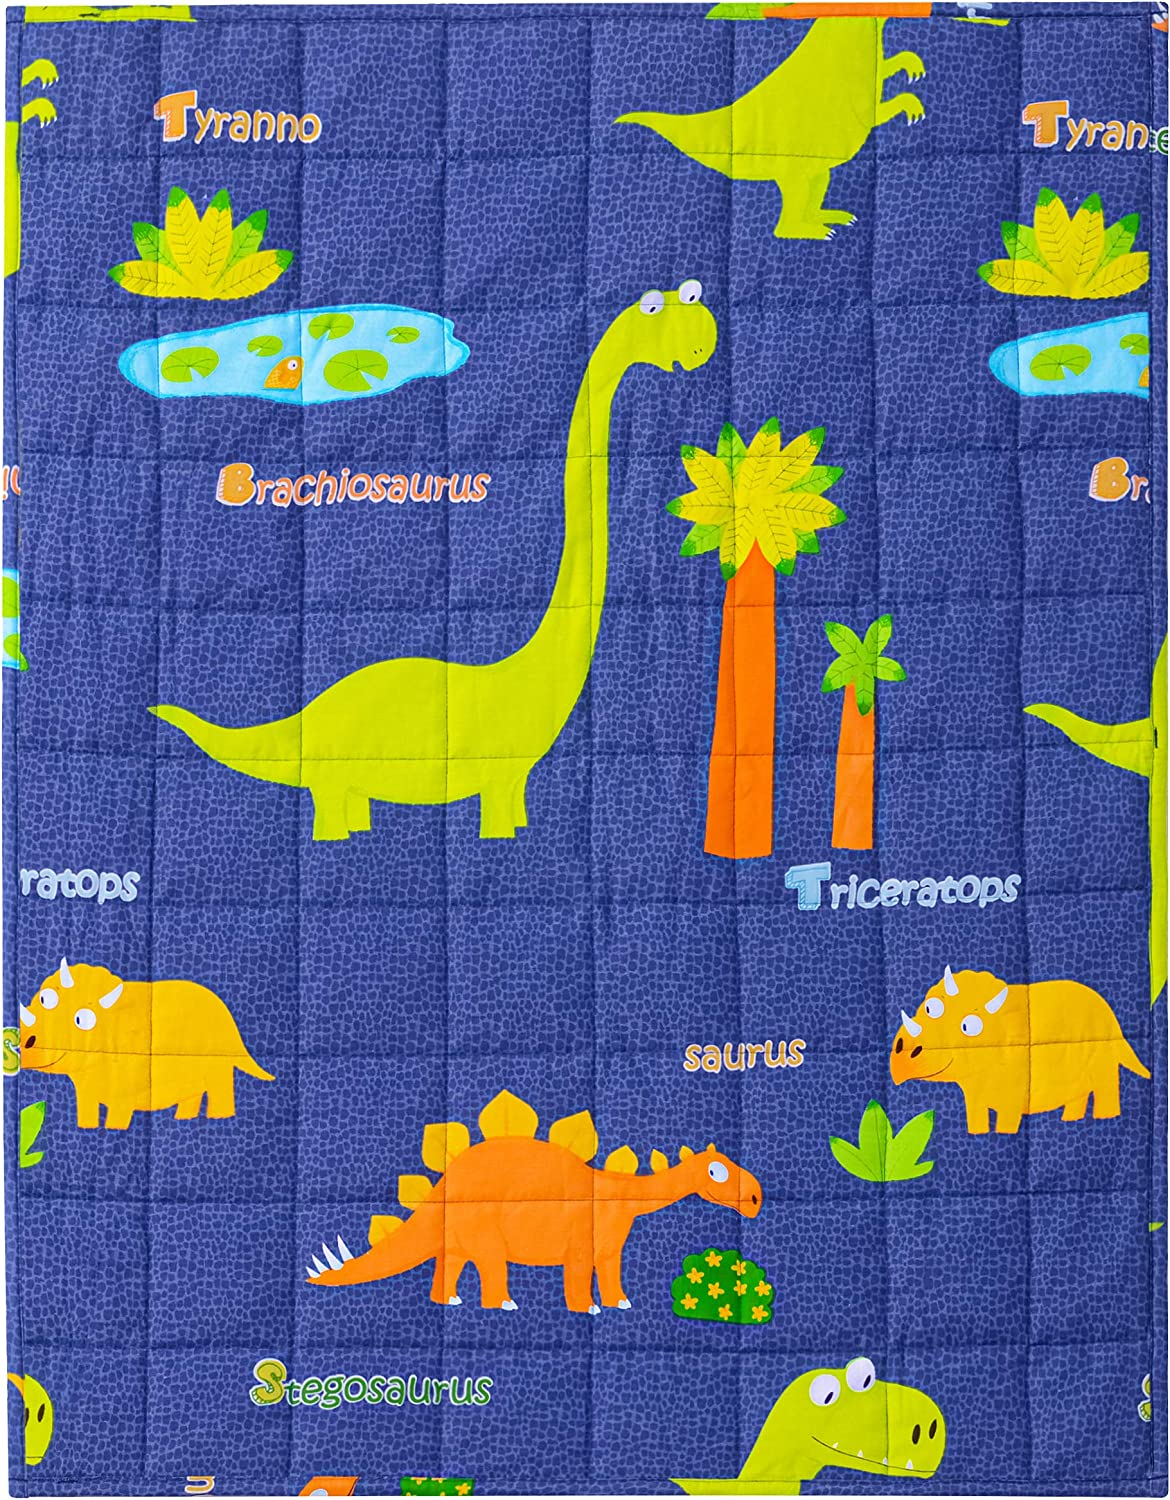 5lbs 600TC Egyptian Cotton Weighted Blanket for Reading with Glass Beads Blue Unicorn Joyching Weighted Lap Pad for Kids 20 x 30 inches